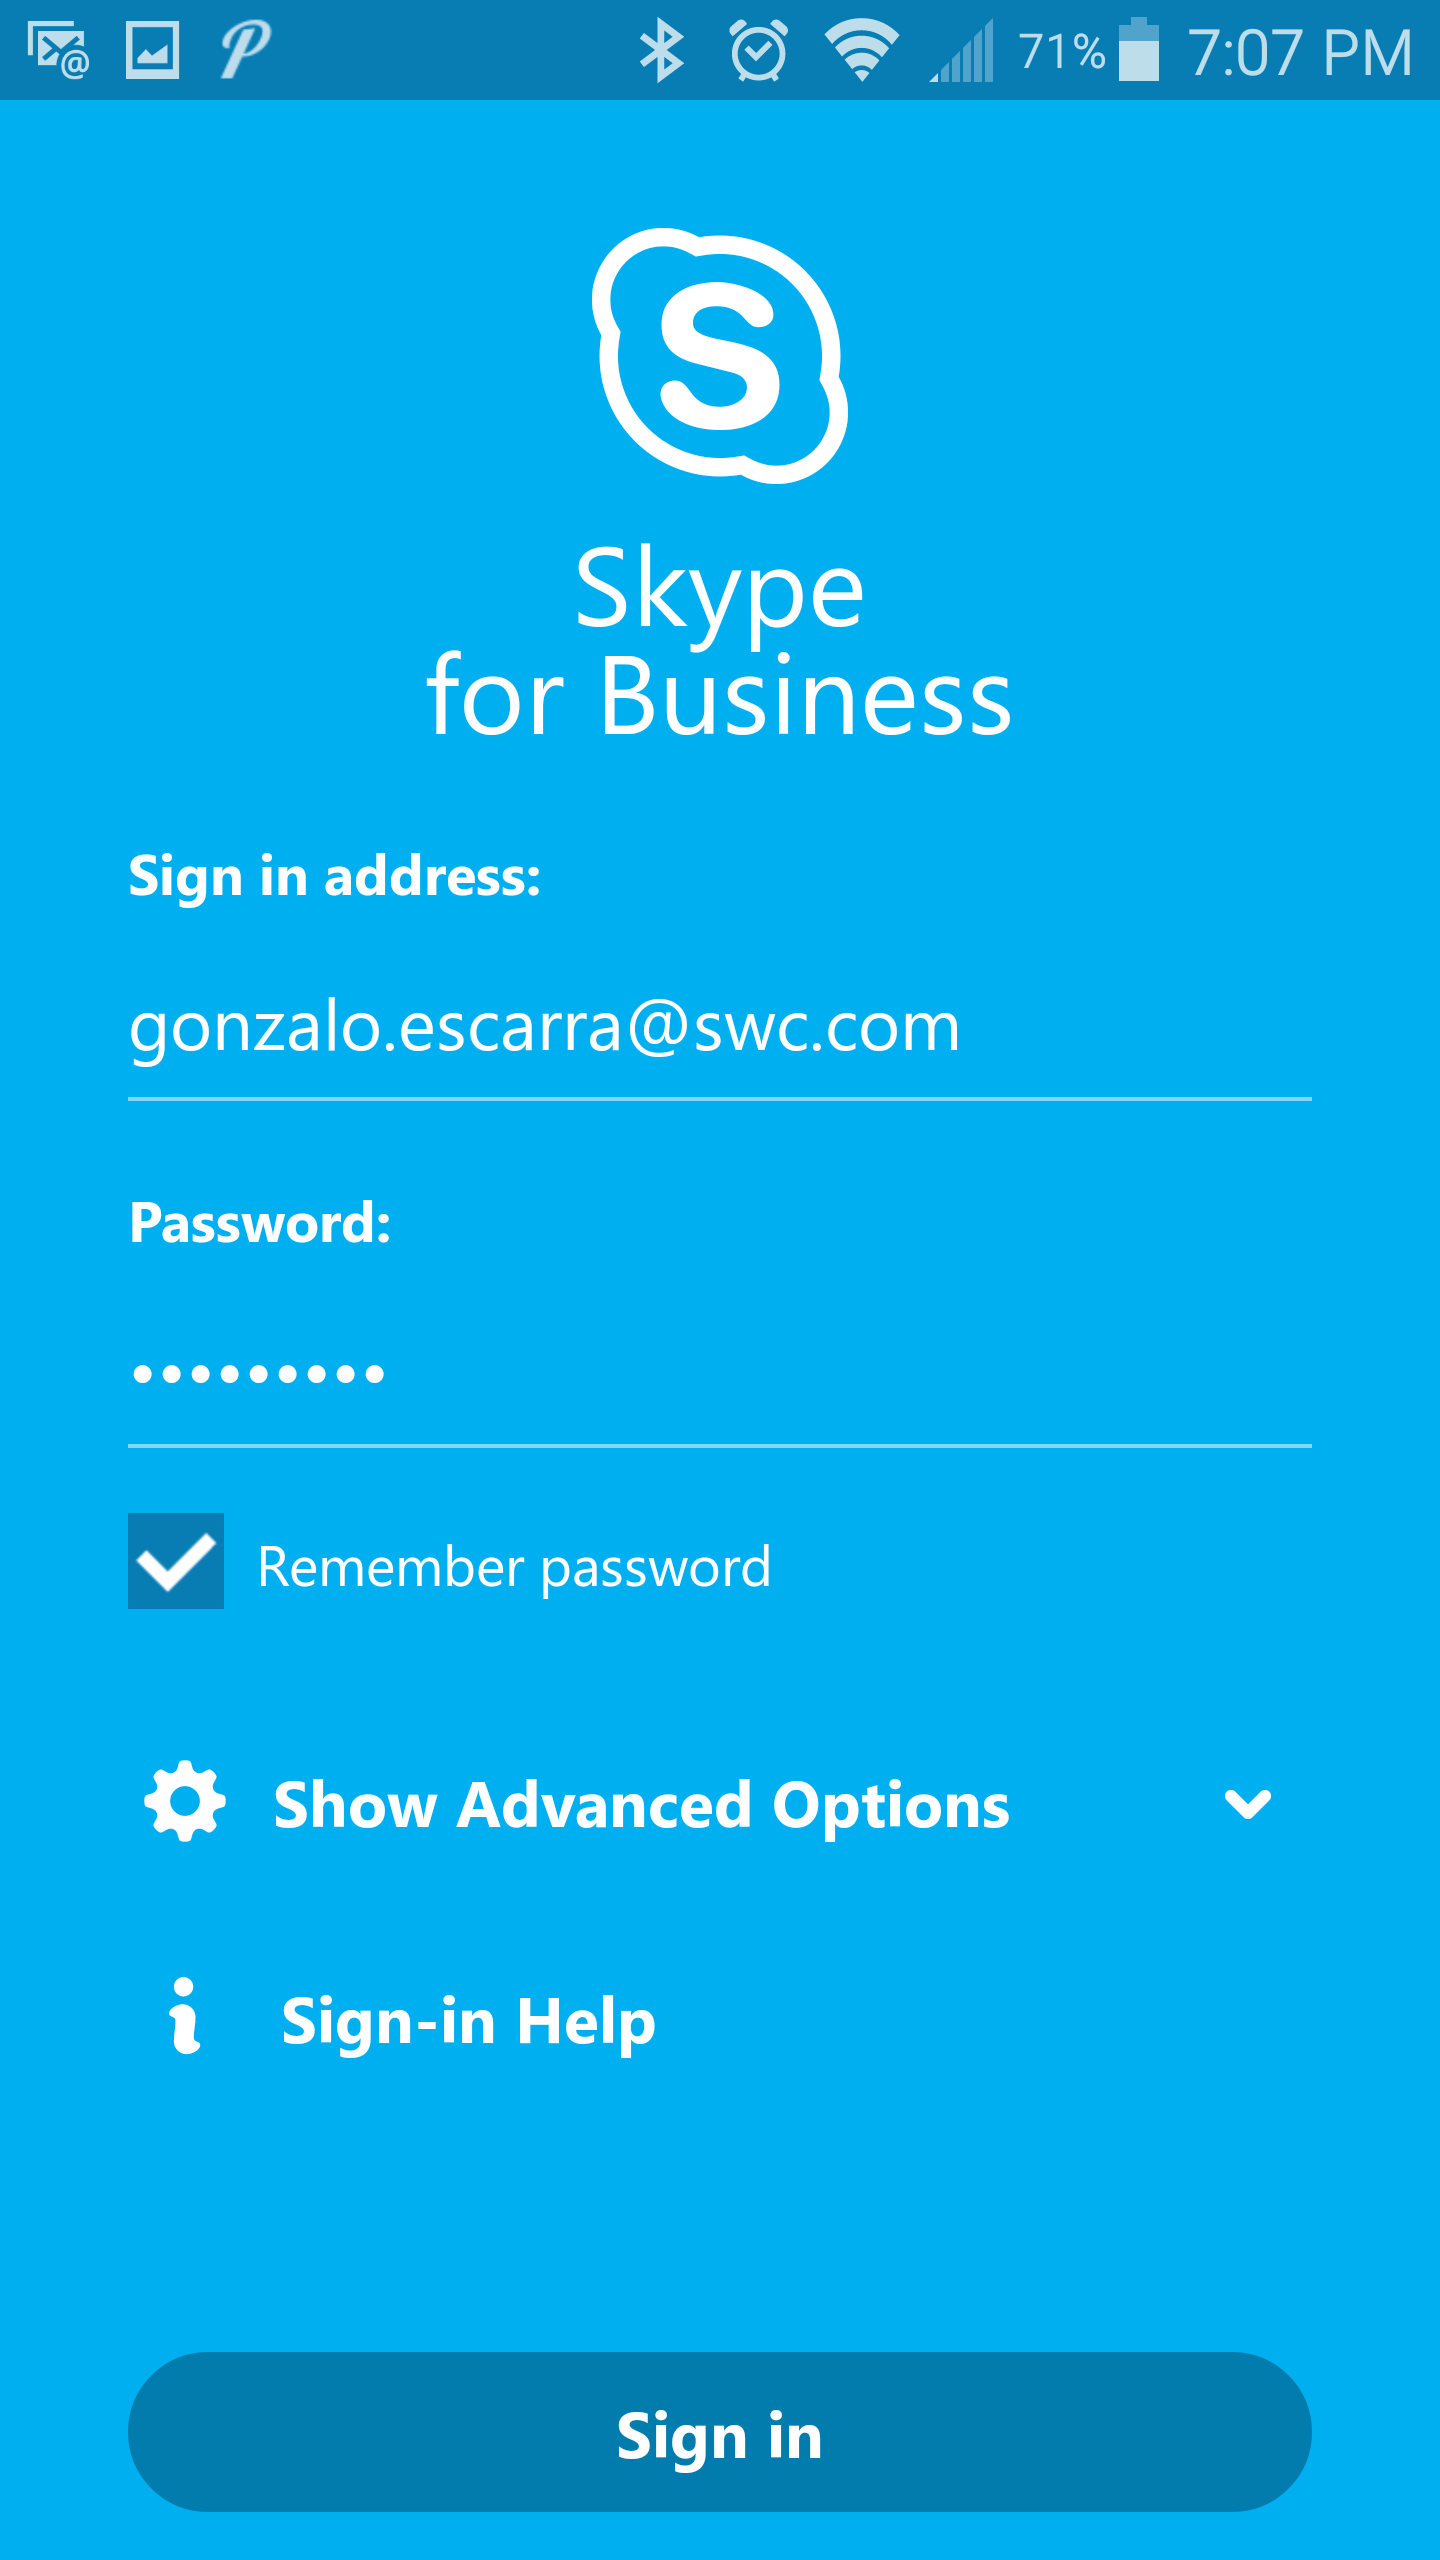 skype for business android app